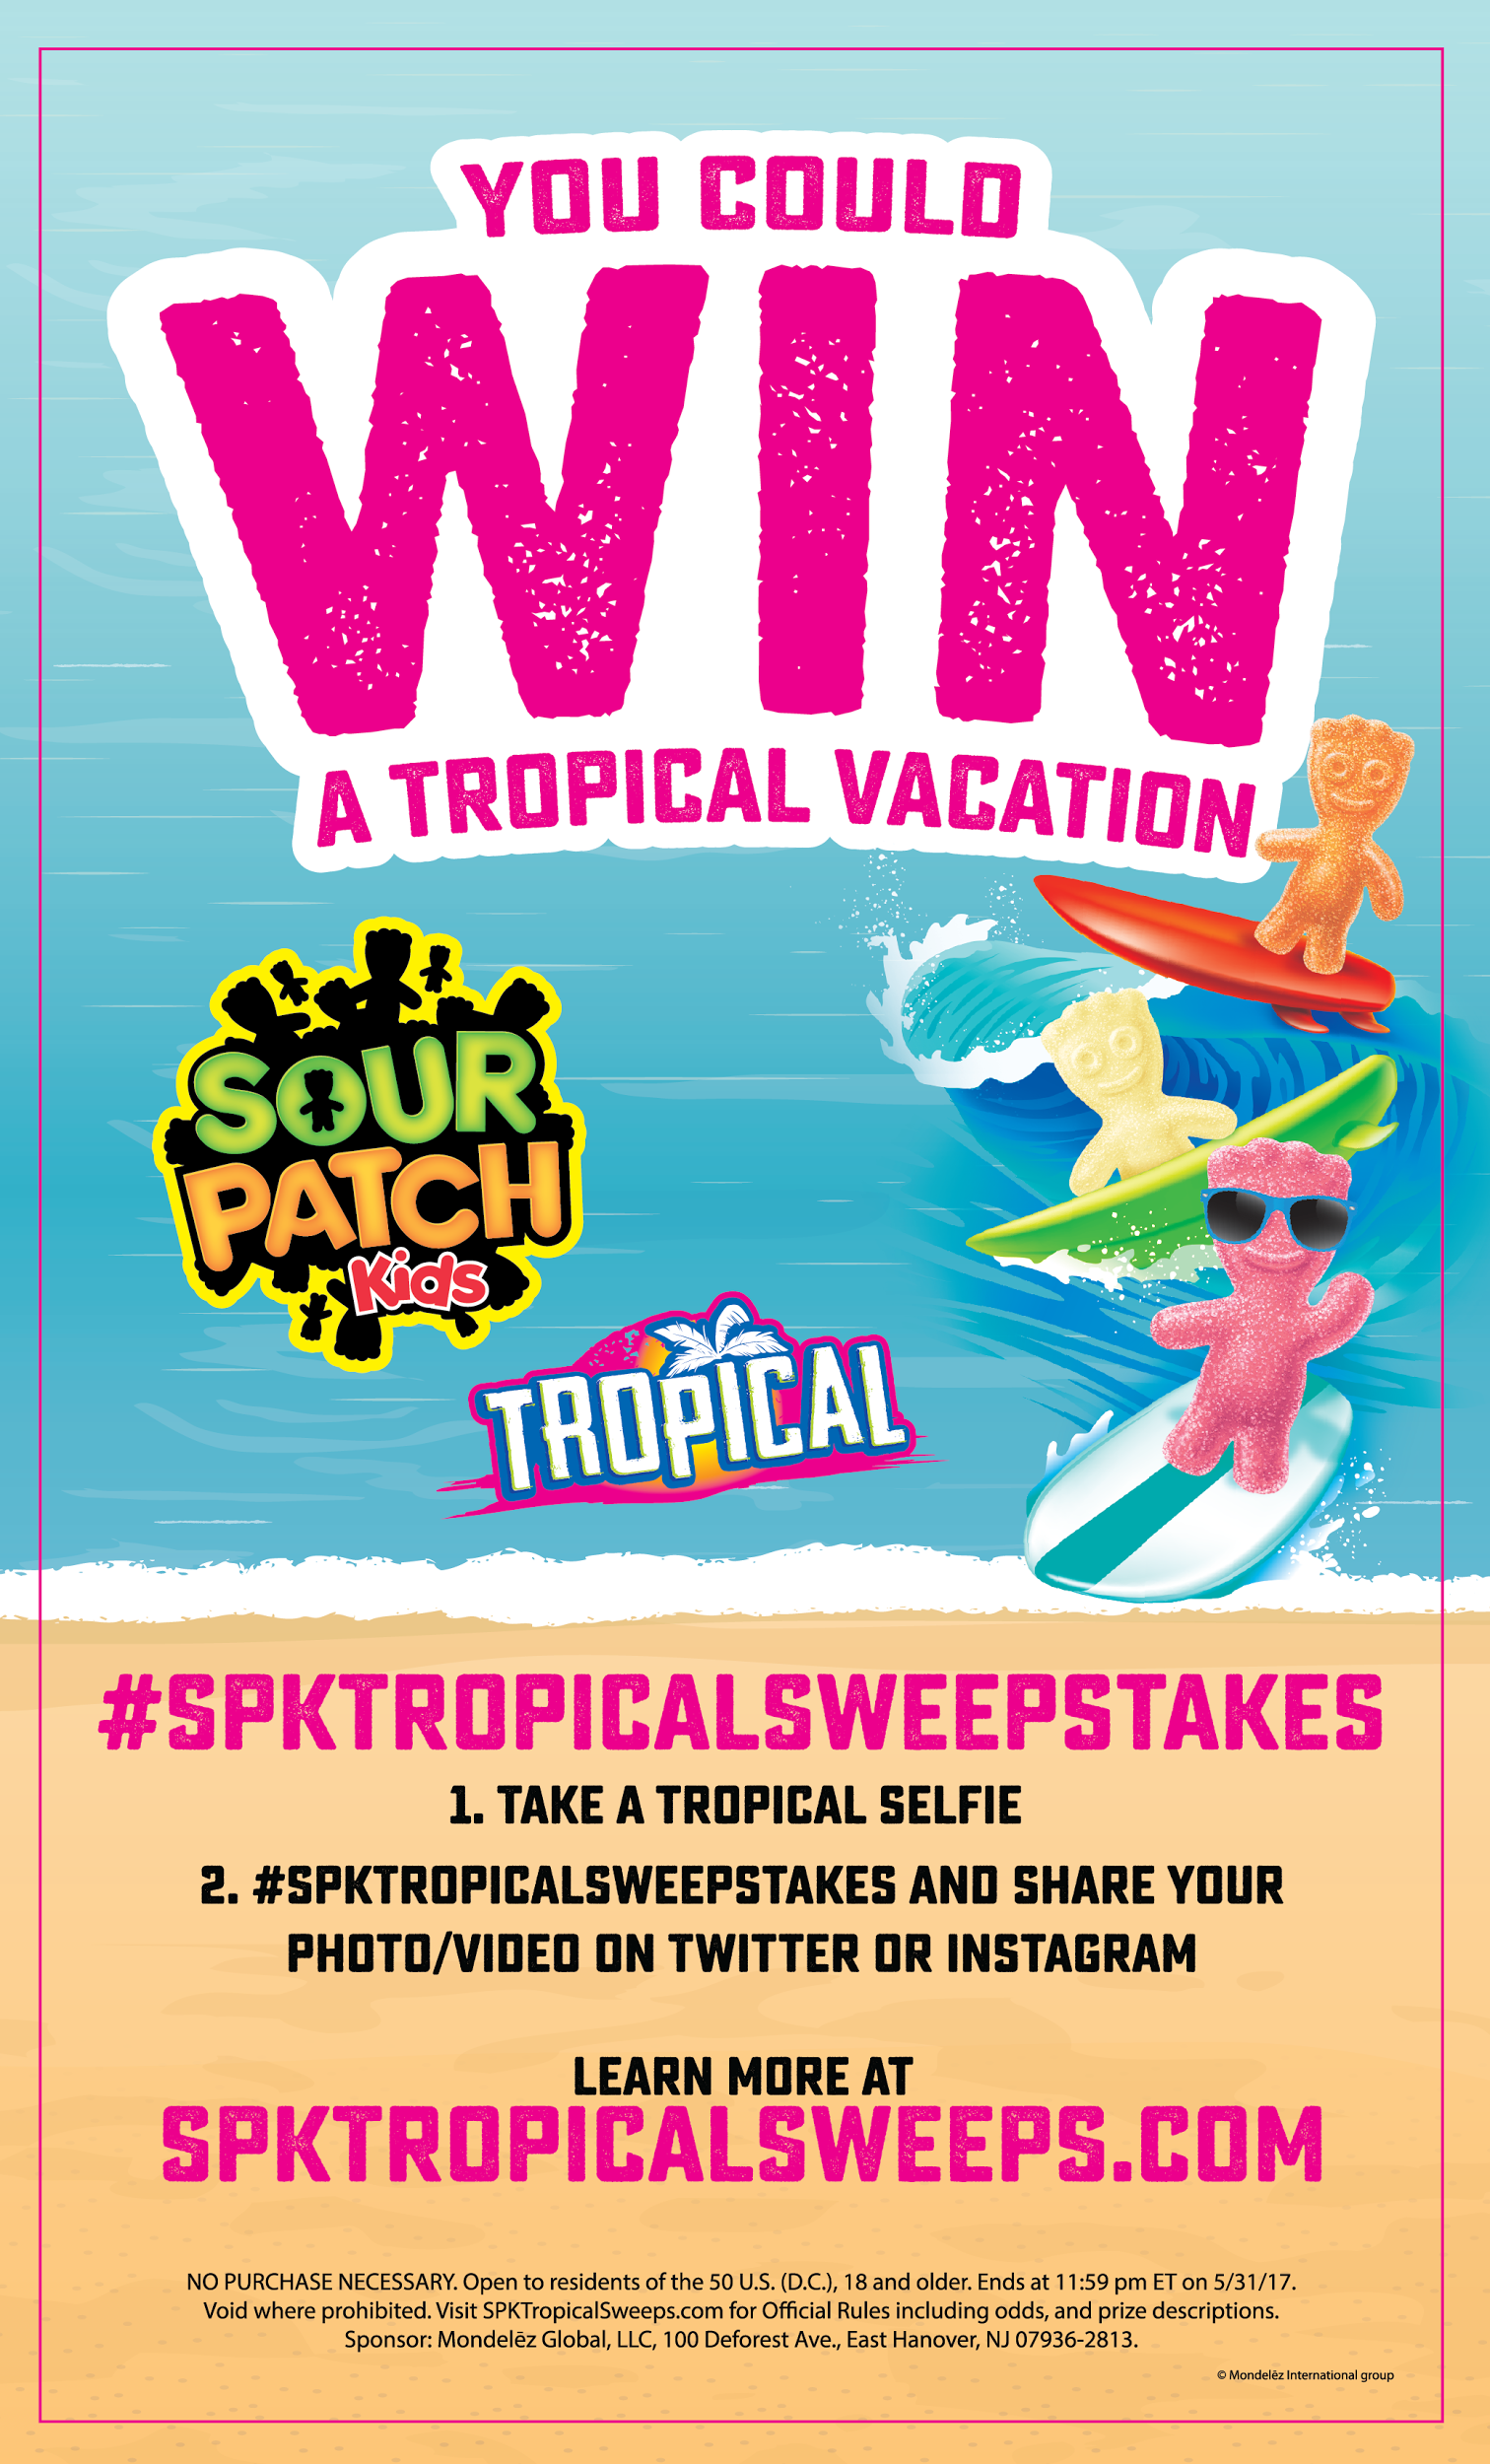 Win Big At Walmart By Purchasing Tropical Sour Patch Kids Find Out More Here Now Spktropicalsweepstakes Ad Sour Patch Kids Sour Patch Tropical Vacation